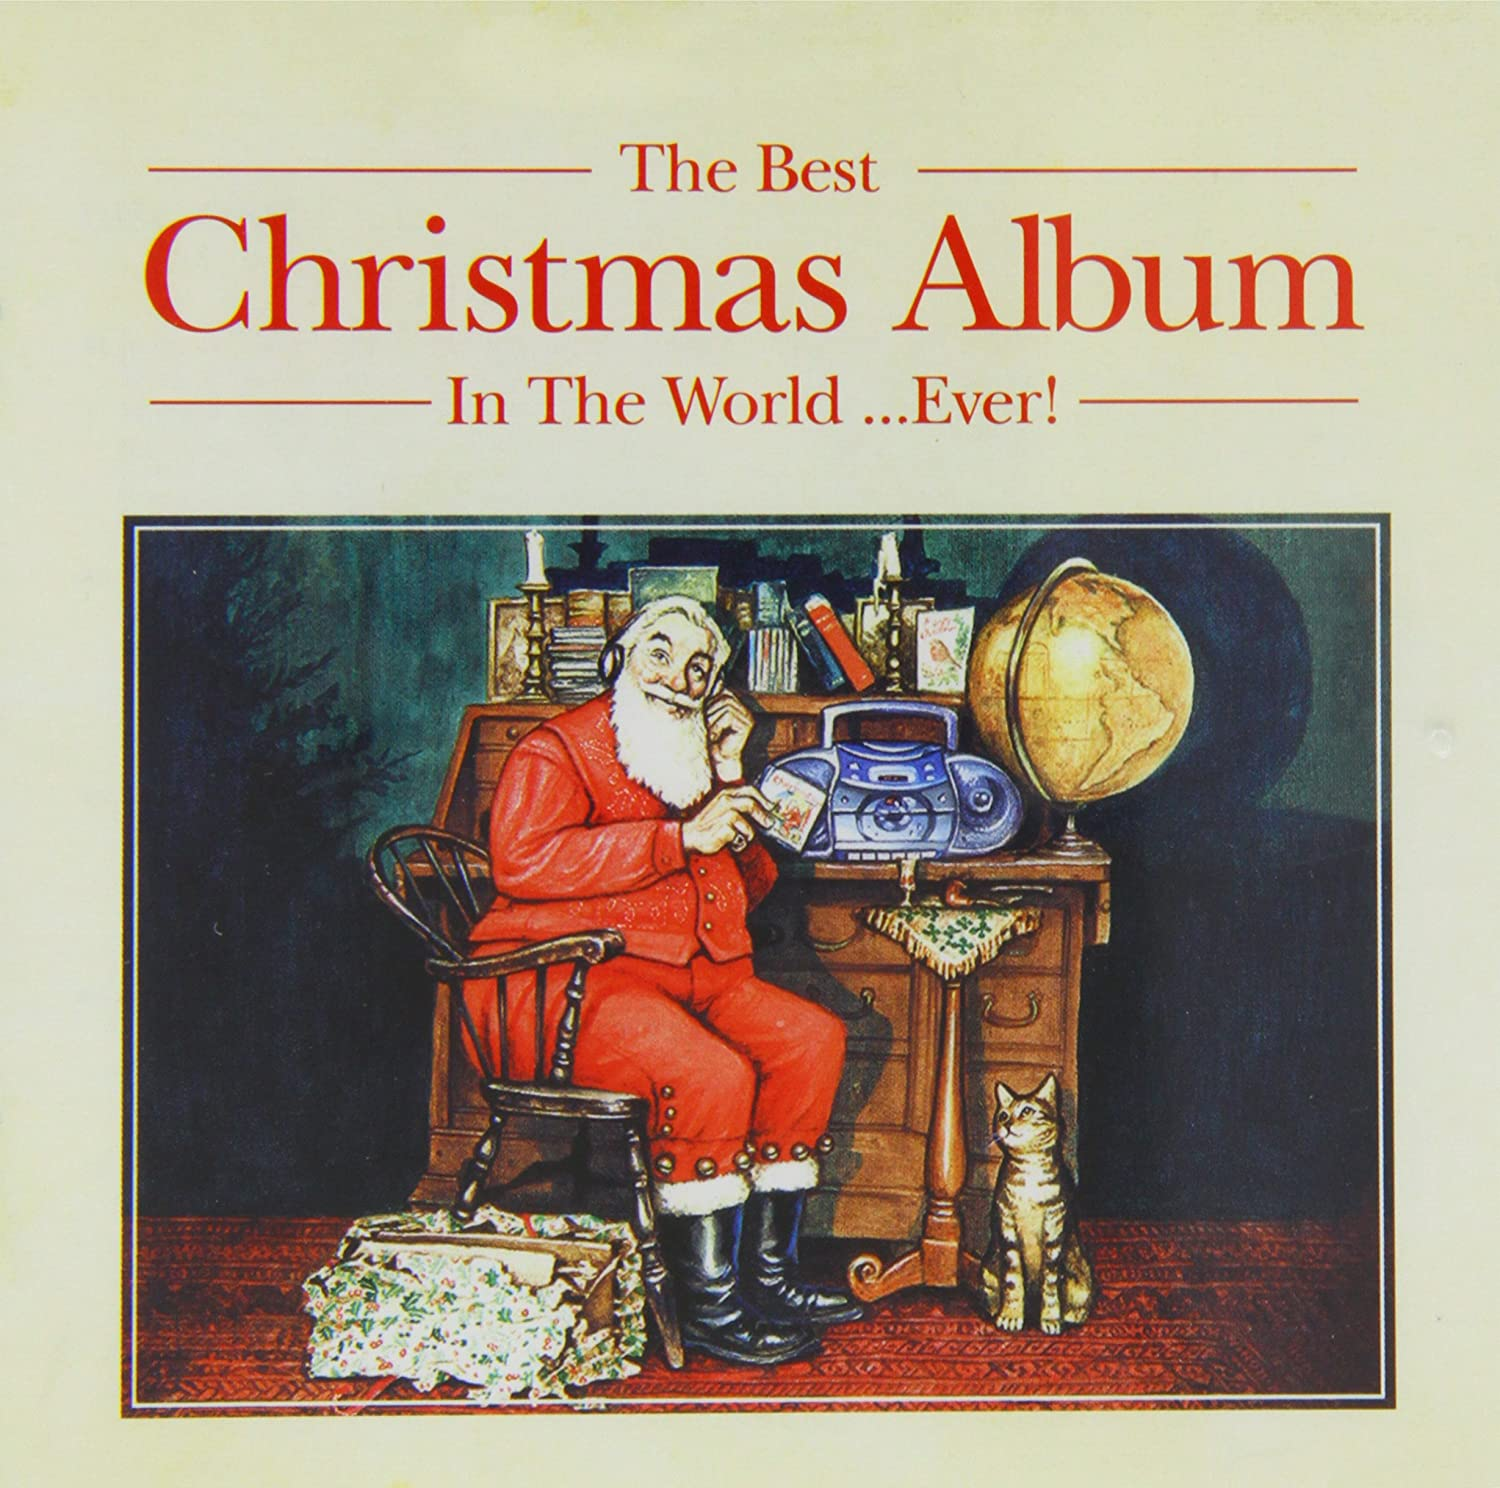 The Best Christmas Album In The World ... Ever!: Amazon.co.uk: Music